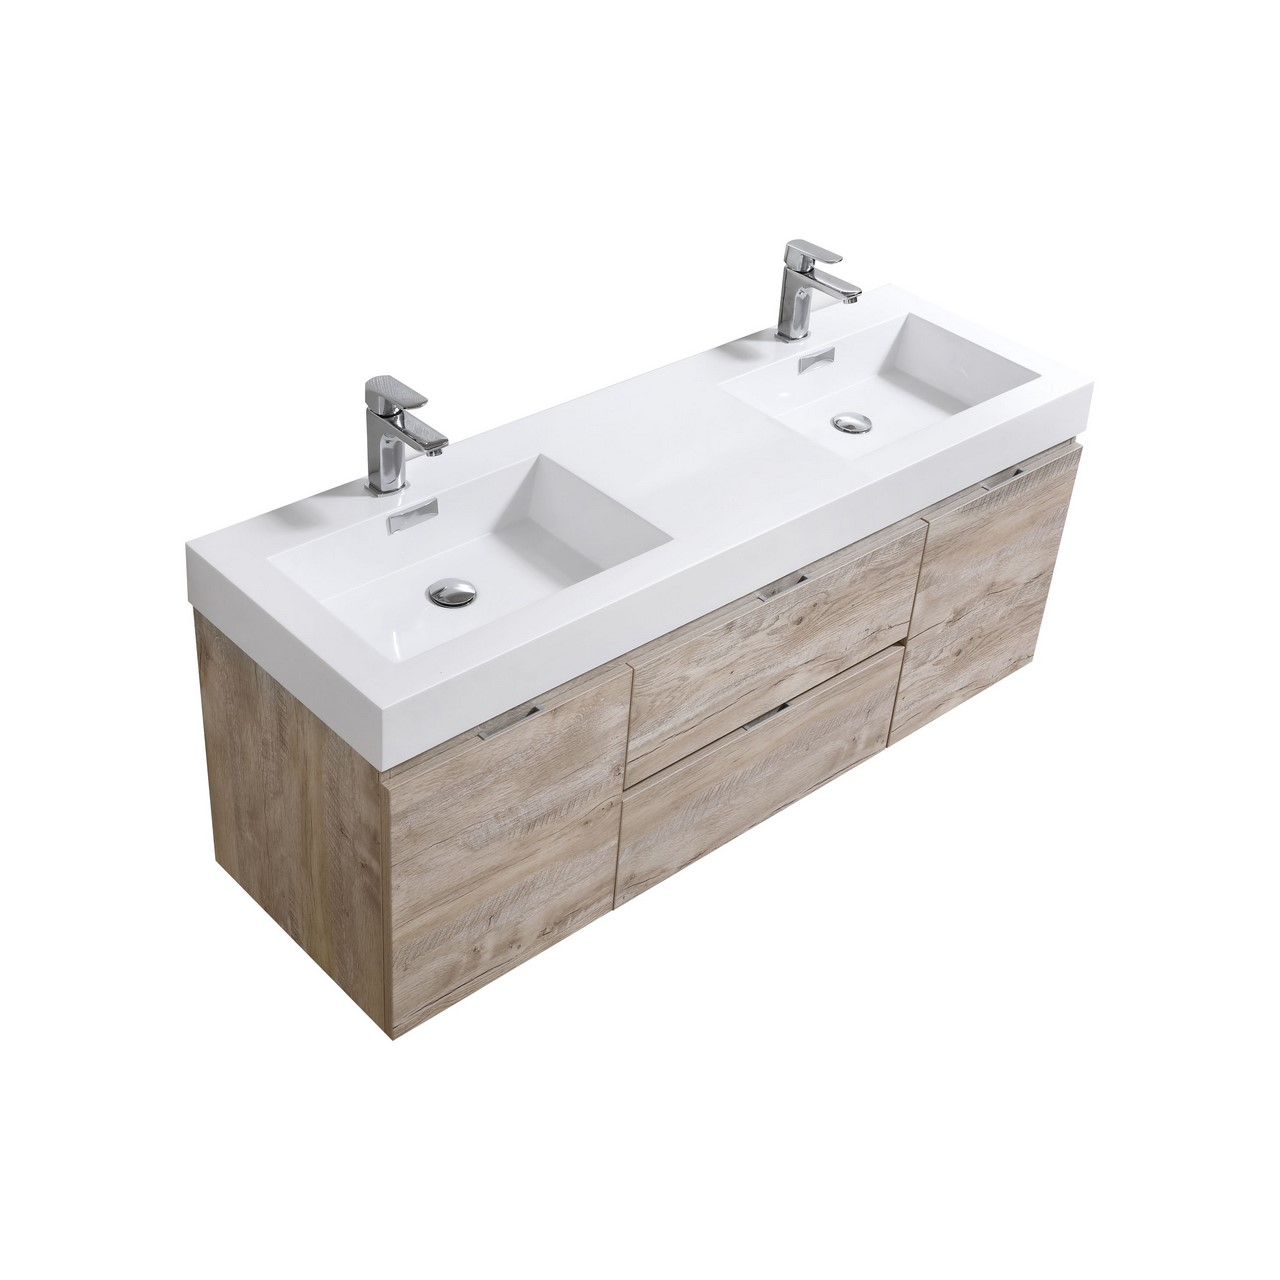 Bliss 60 nature wood wall mount double sink modern for Double sink bathroom vanity